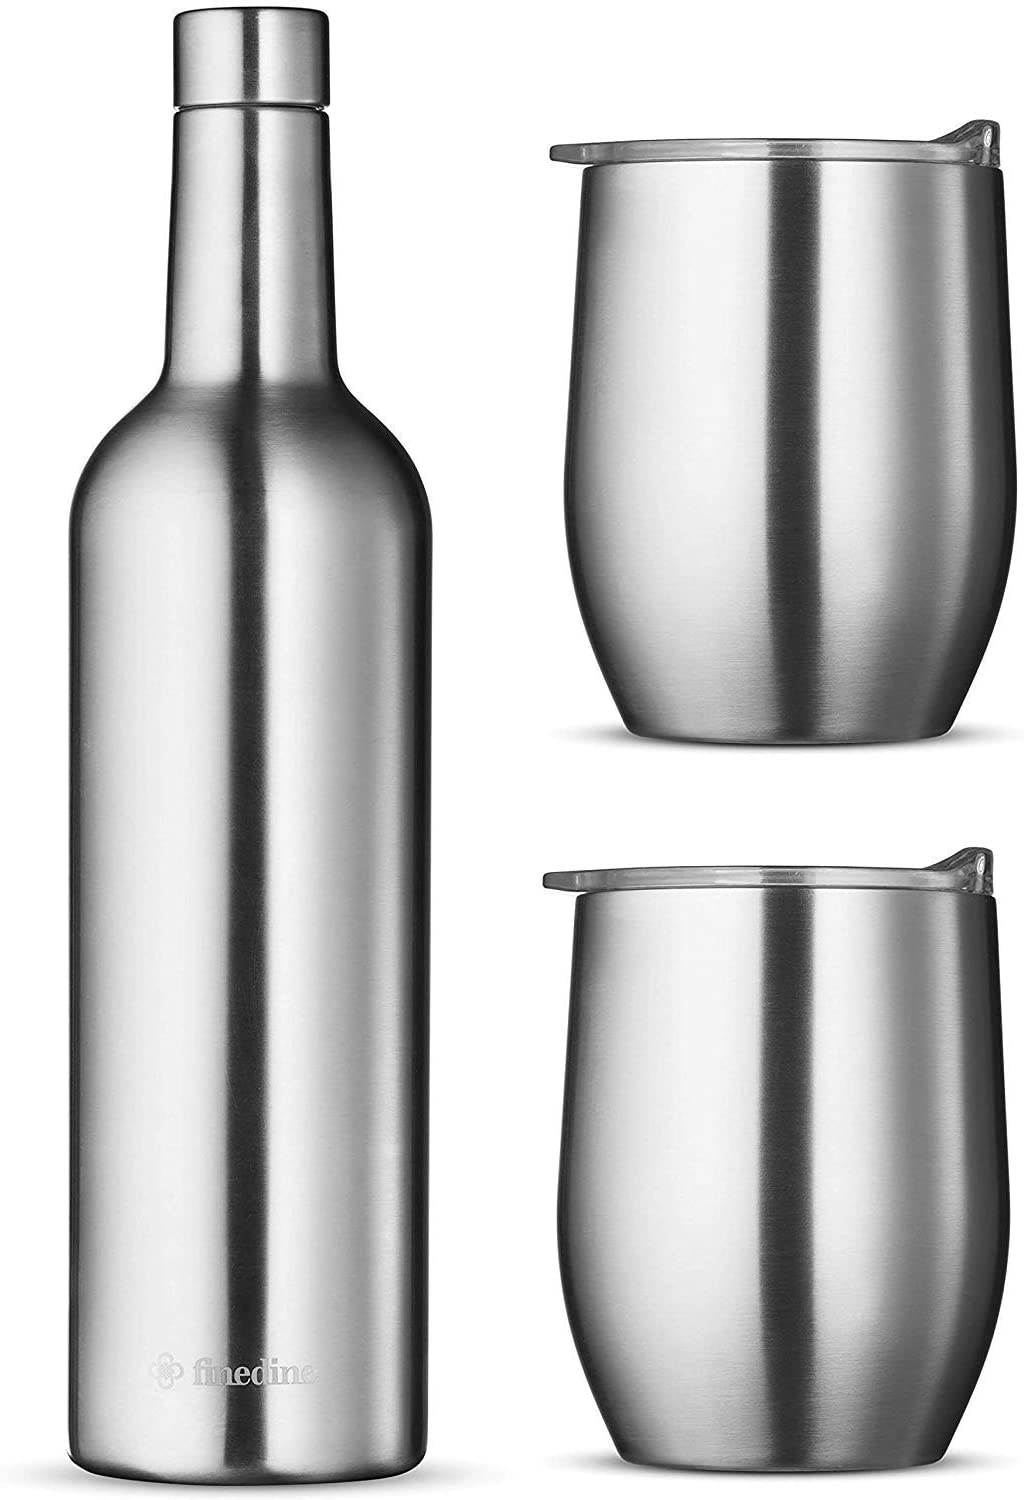 Wine Chiller Gift Set - Vacuum Insulated Bottle 750ml Two Tumbler with Lids 16oz. Silver Stainless Steel